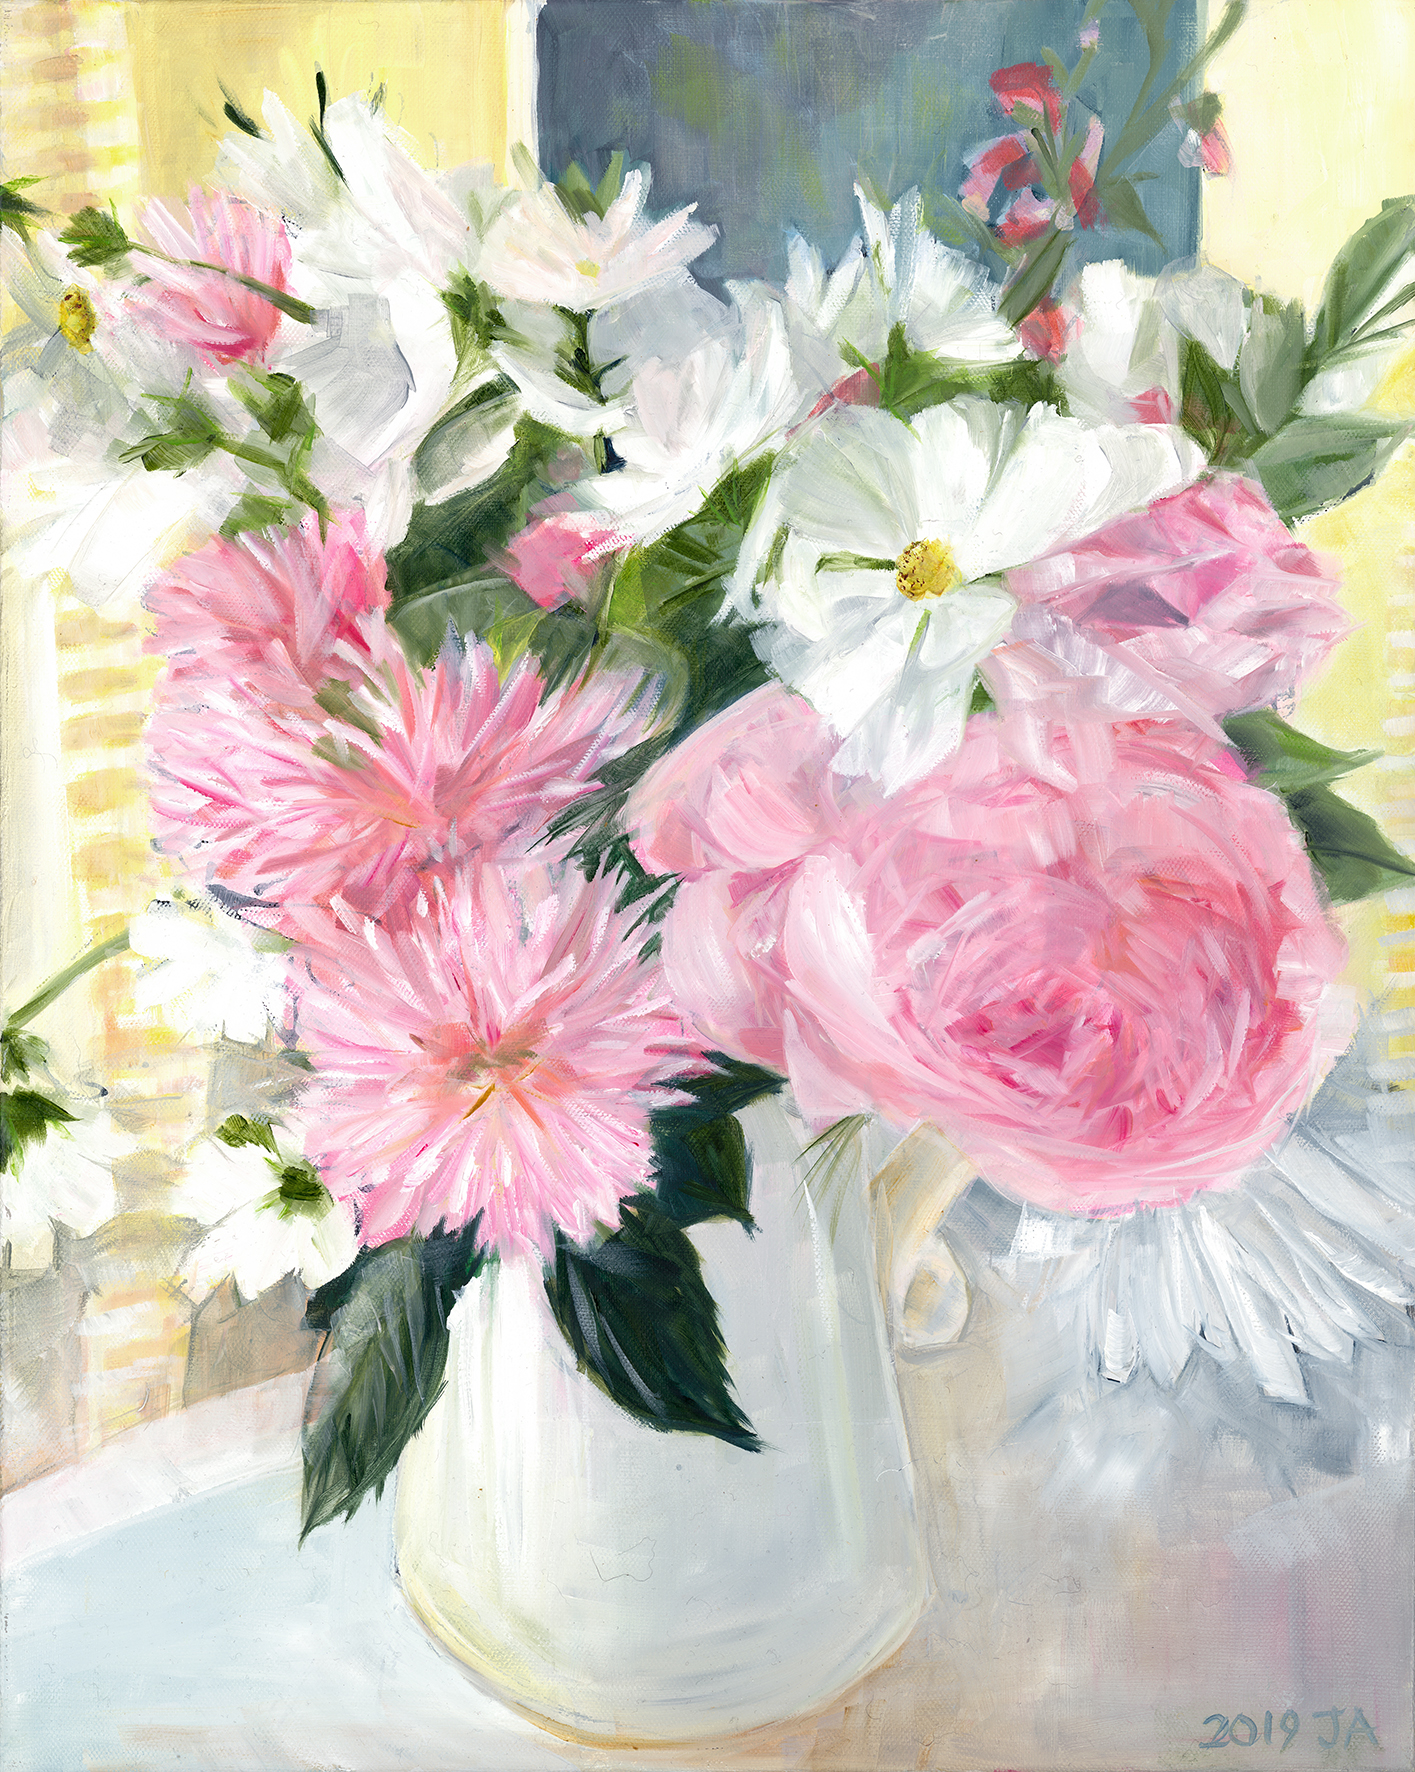 White Cosmos with pink Daliahs and Roses as an A3 Giclee print.